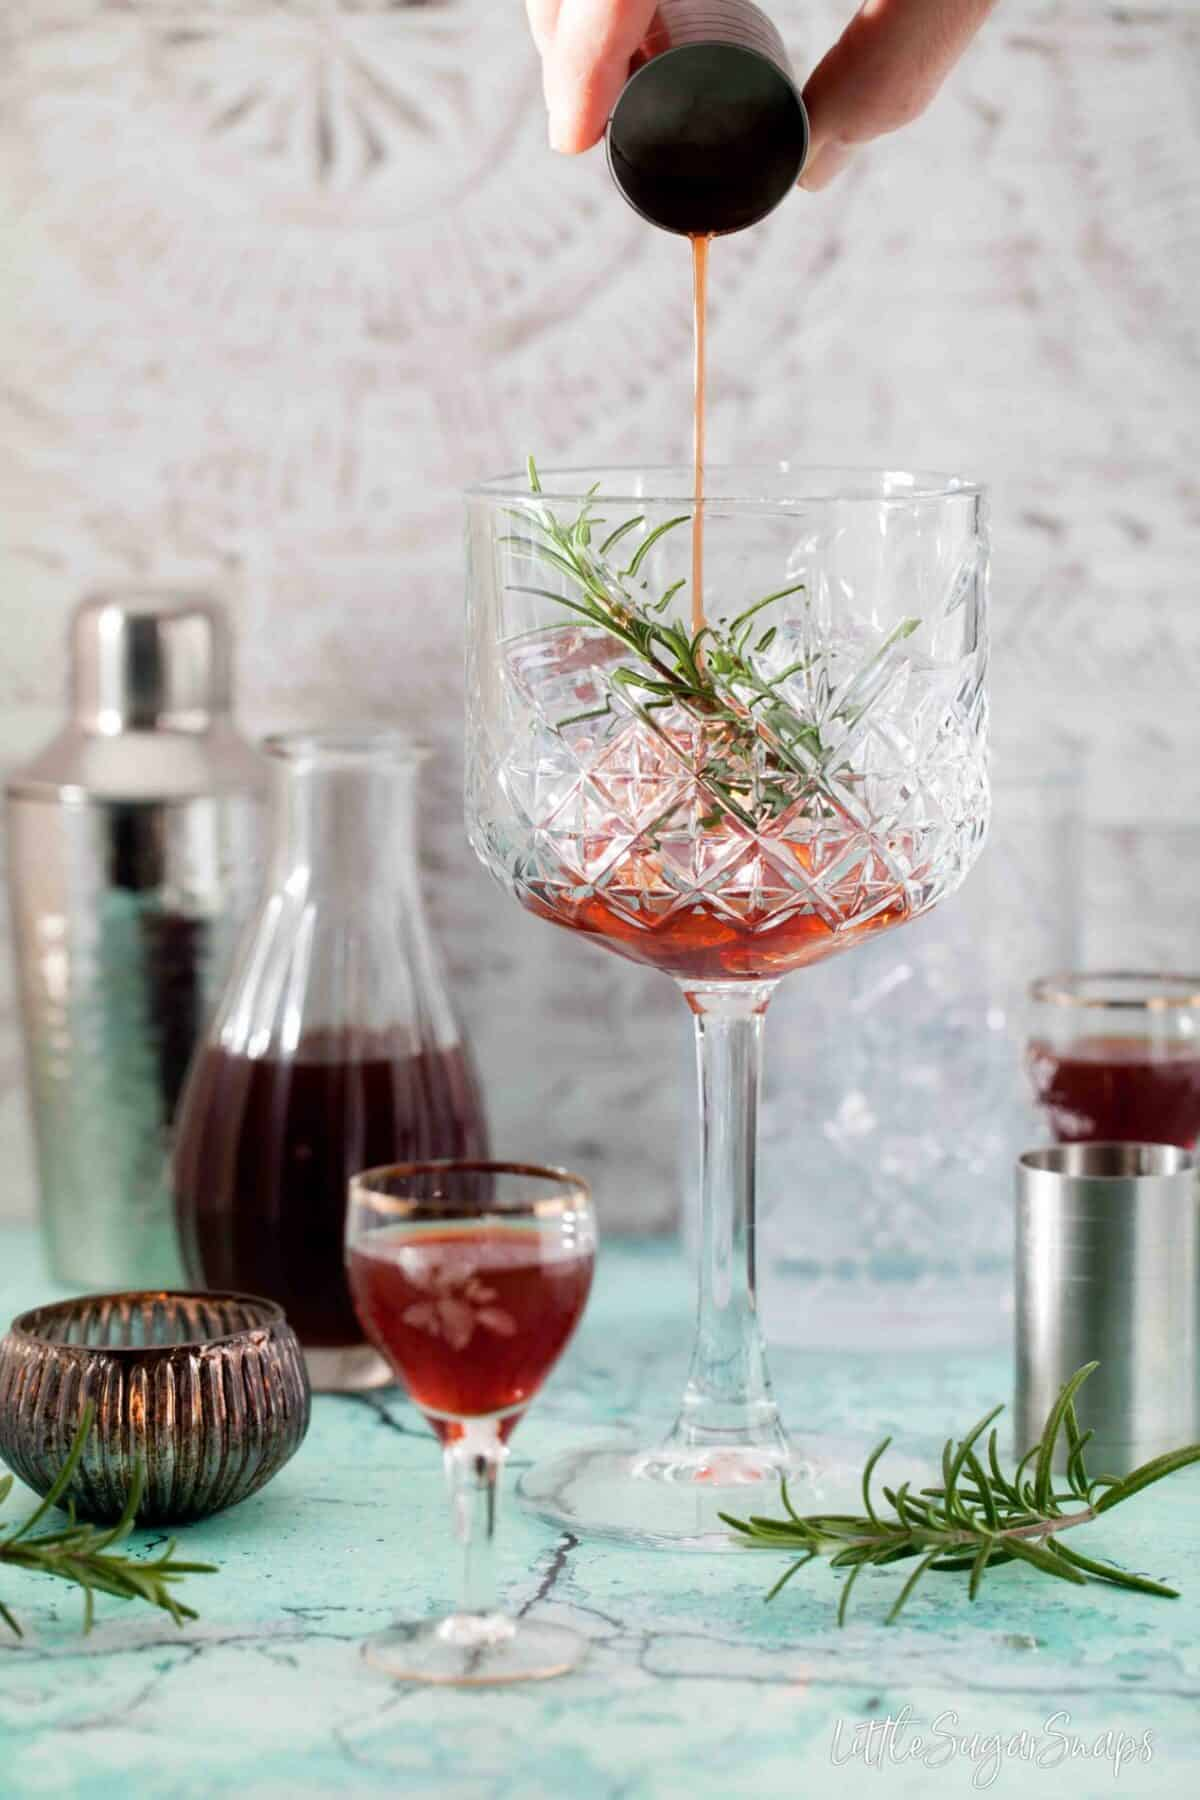 pouring sloe gin into a copa glass